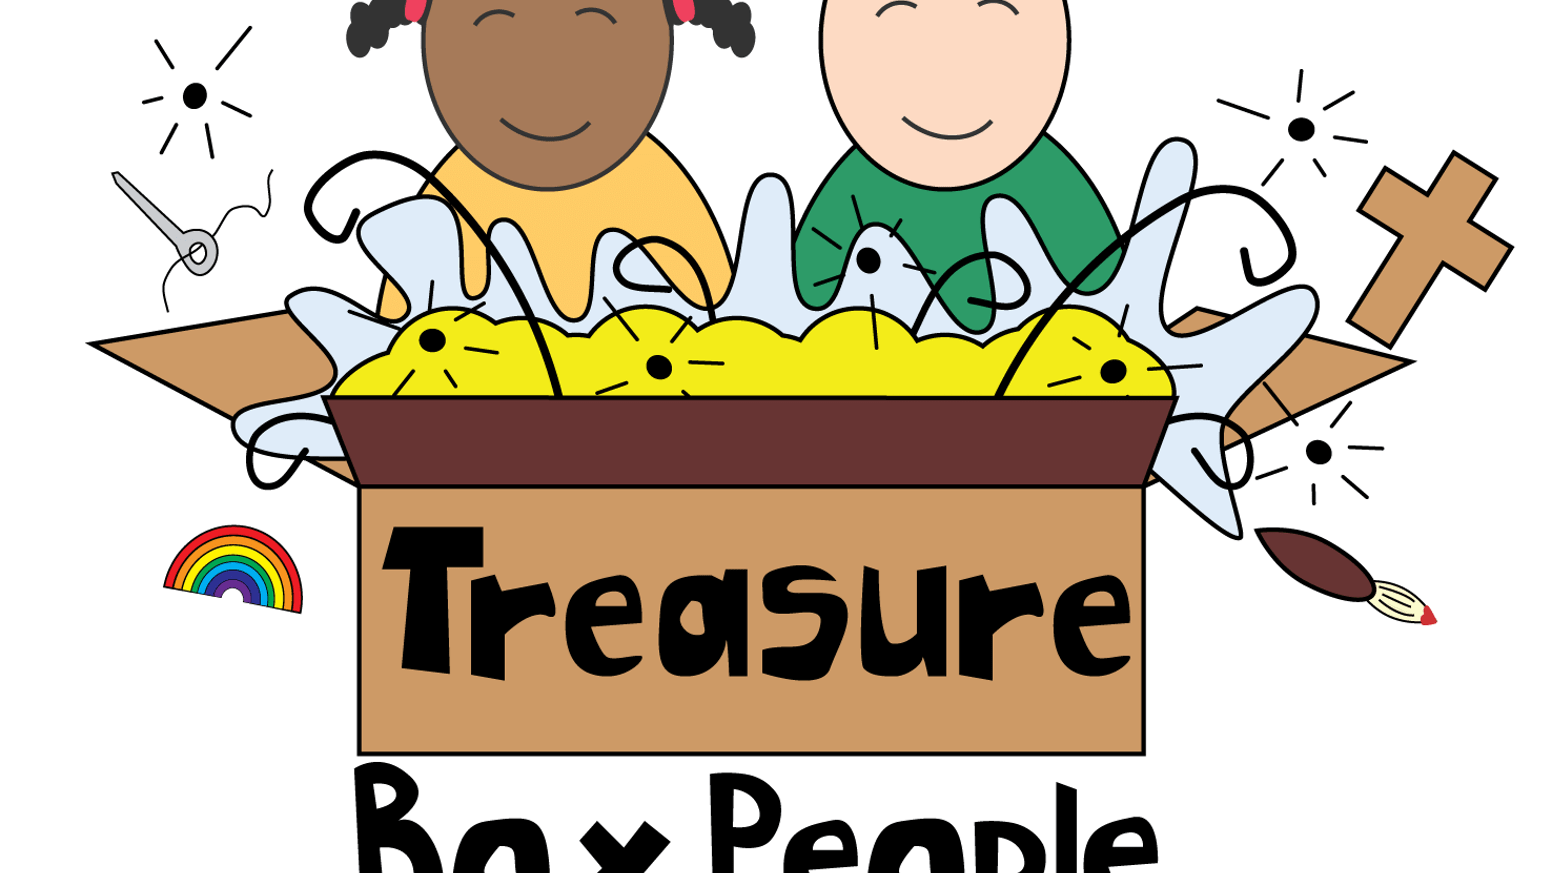 Treasure Clipart Word Treasure Word Transparent Free For